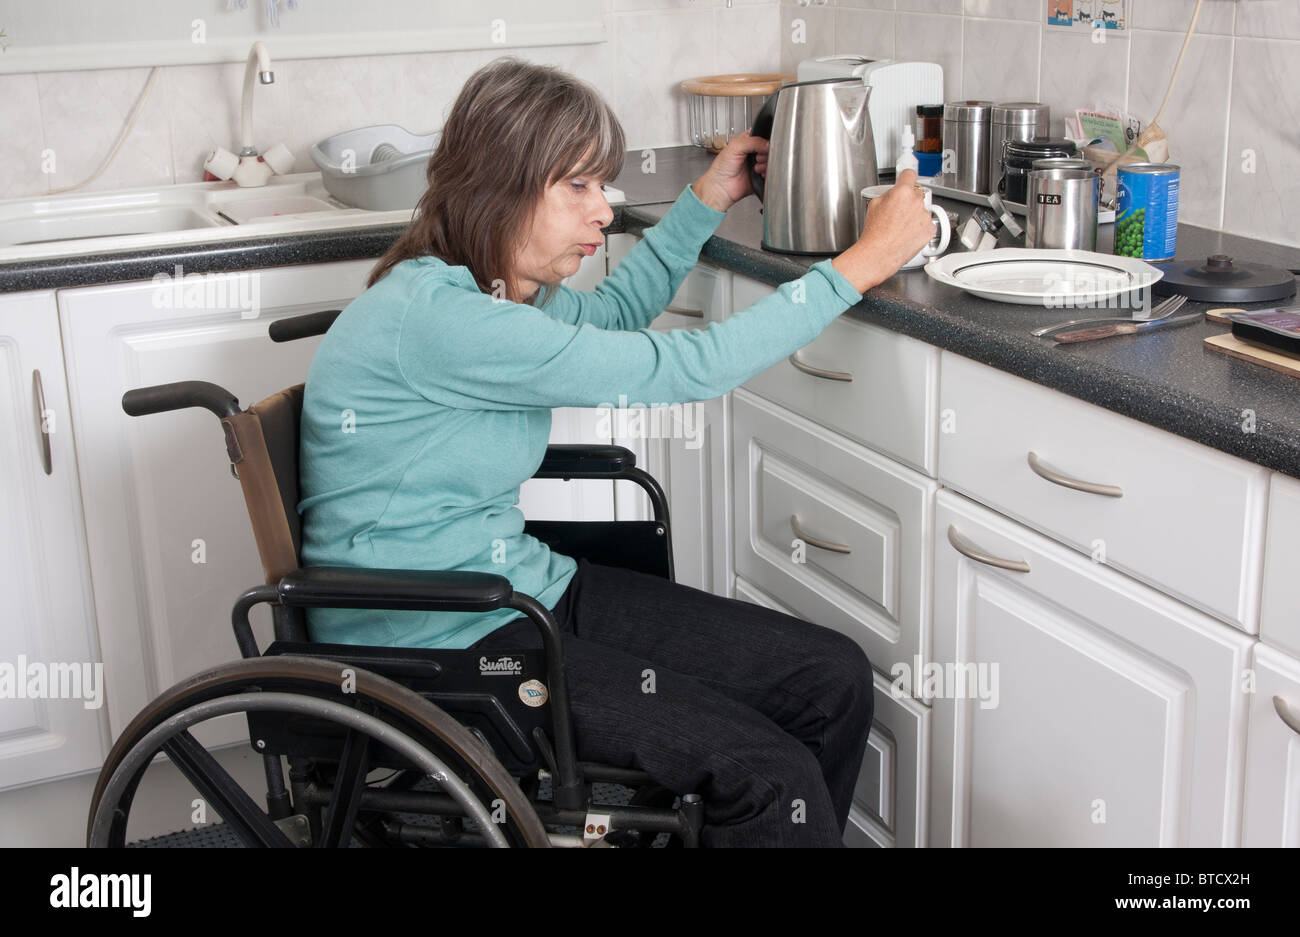 Disabled Woman Cooking Stock Photos & Disabled Woman Cooking Stock ...